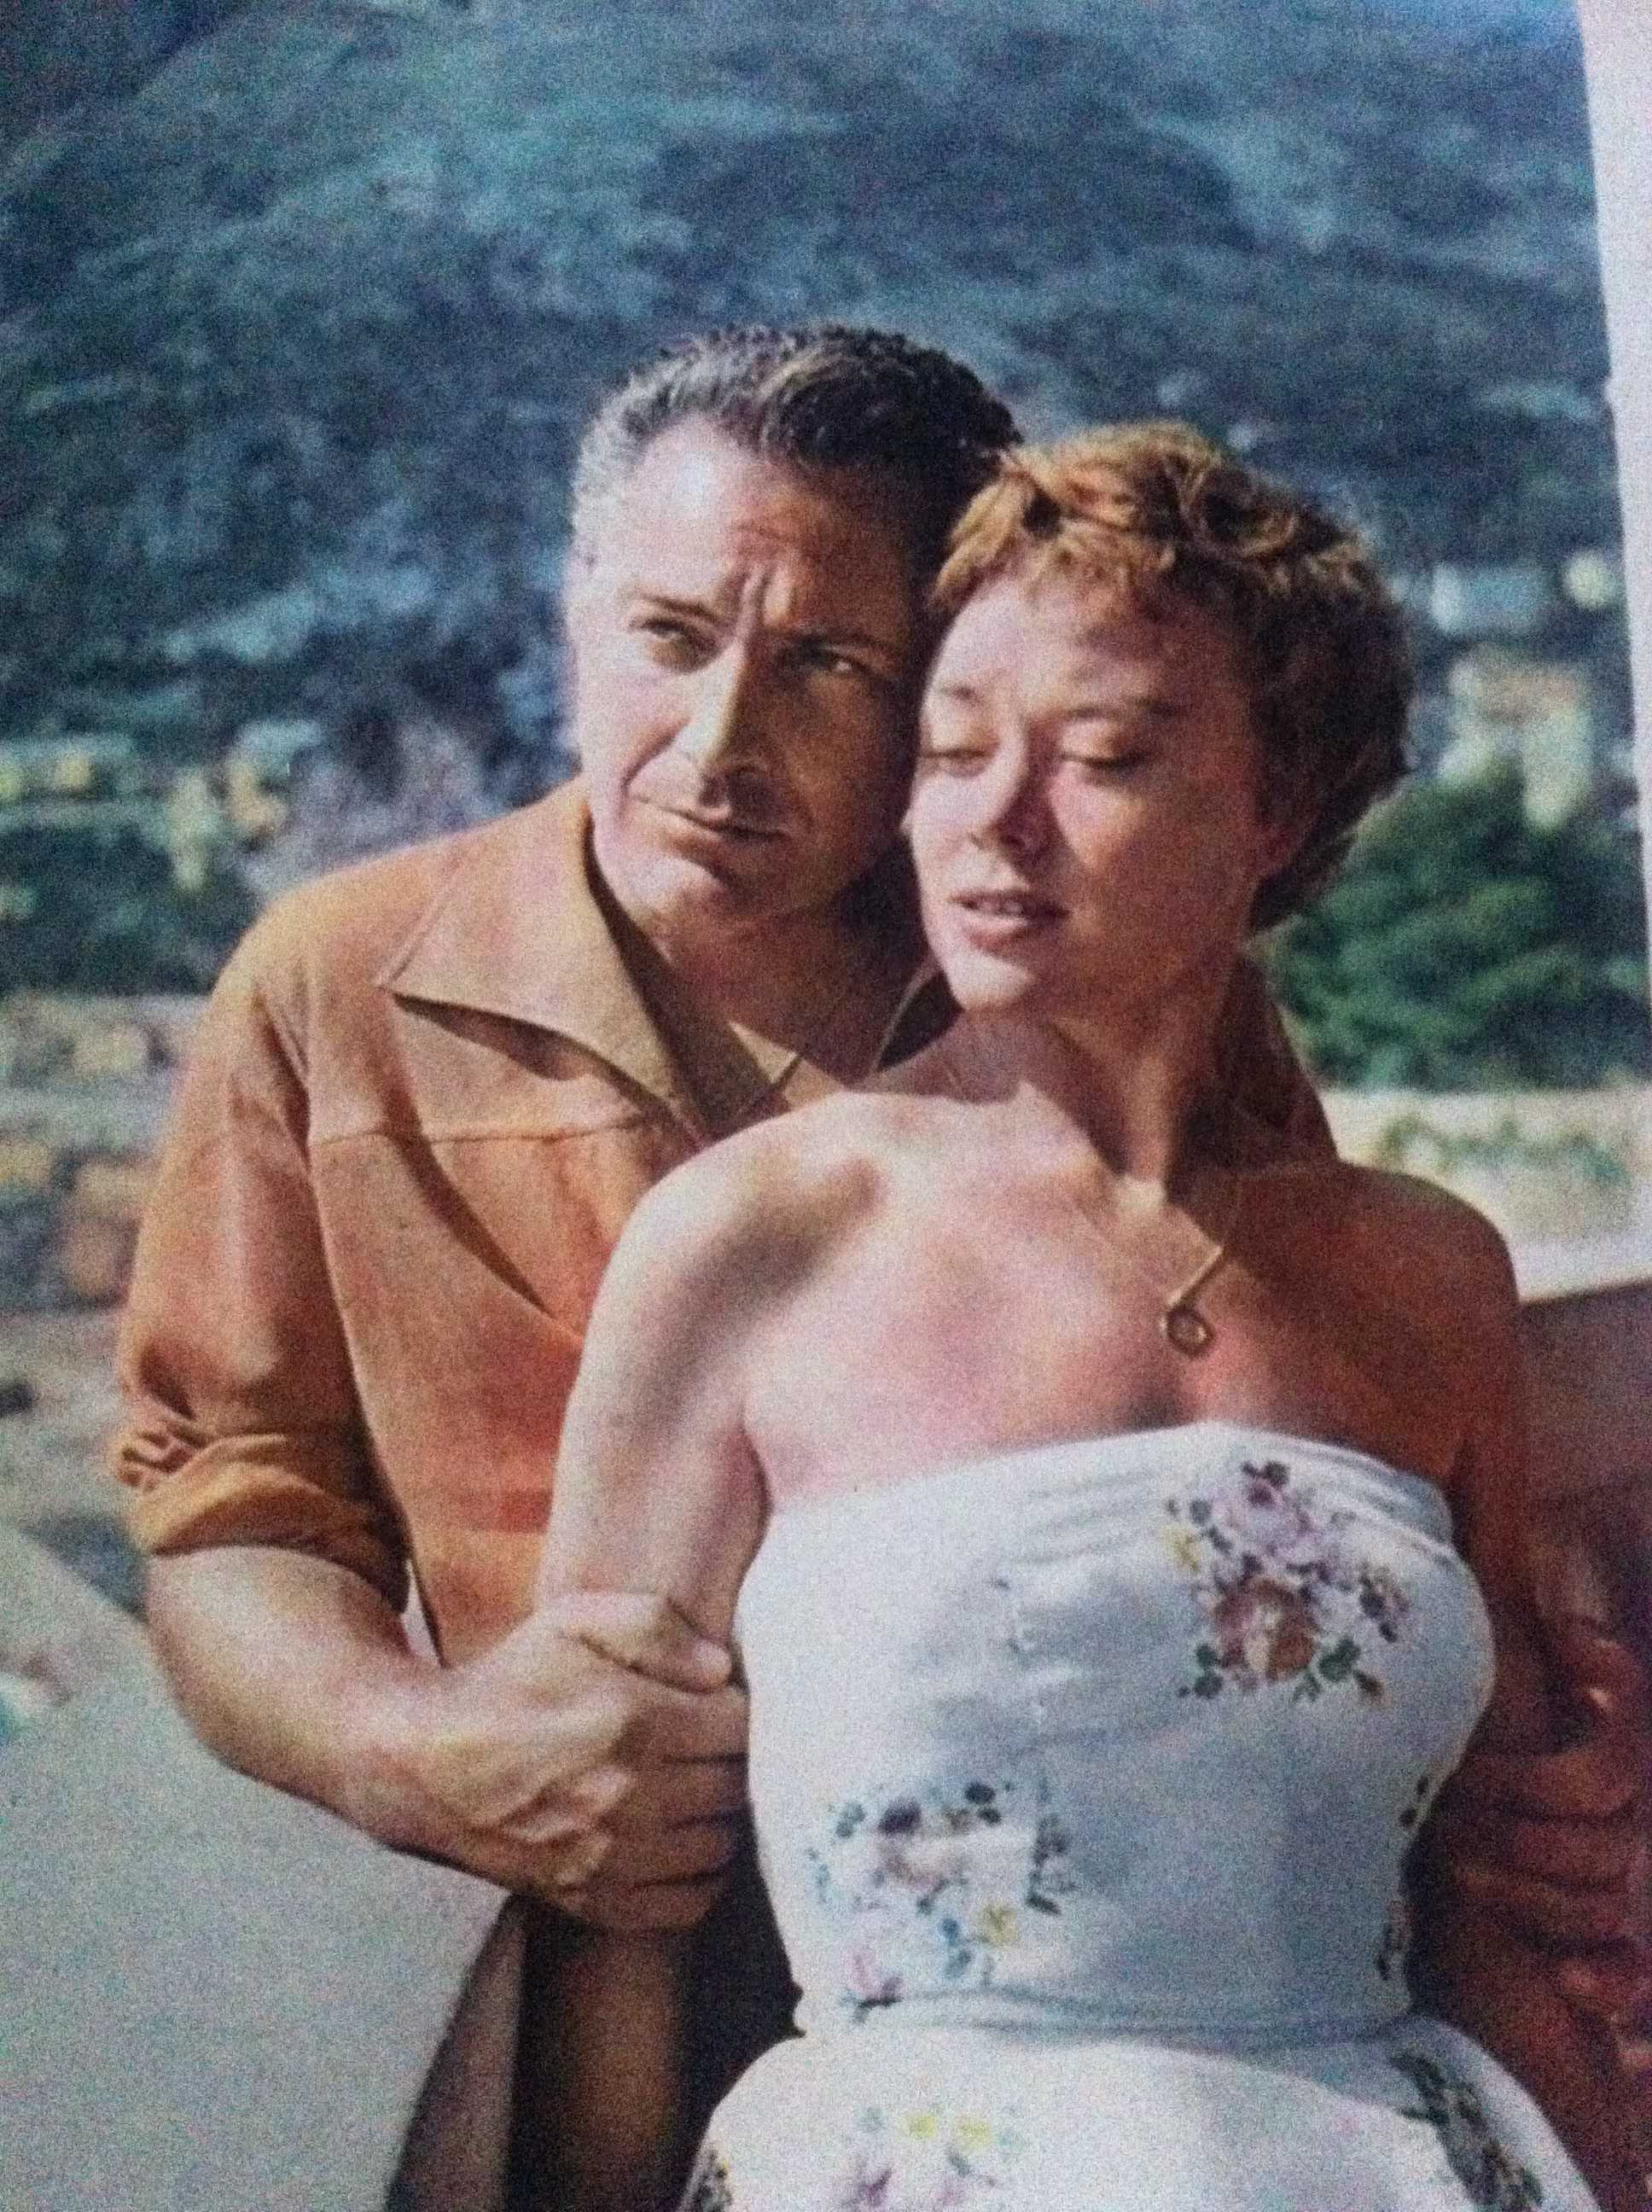 Rossano Brazzi and Glynis Johns in Loser Takes All (1956)